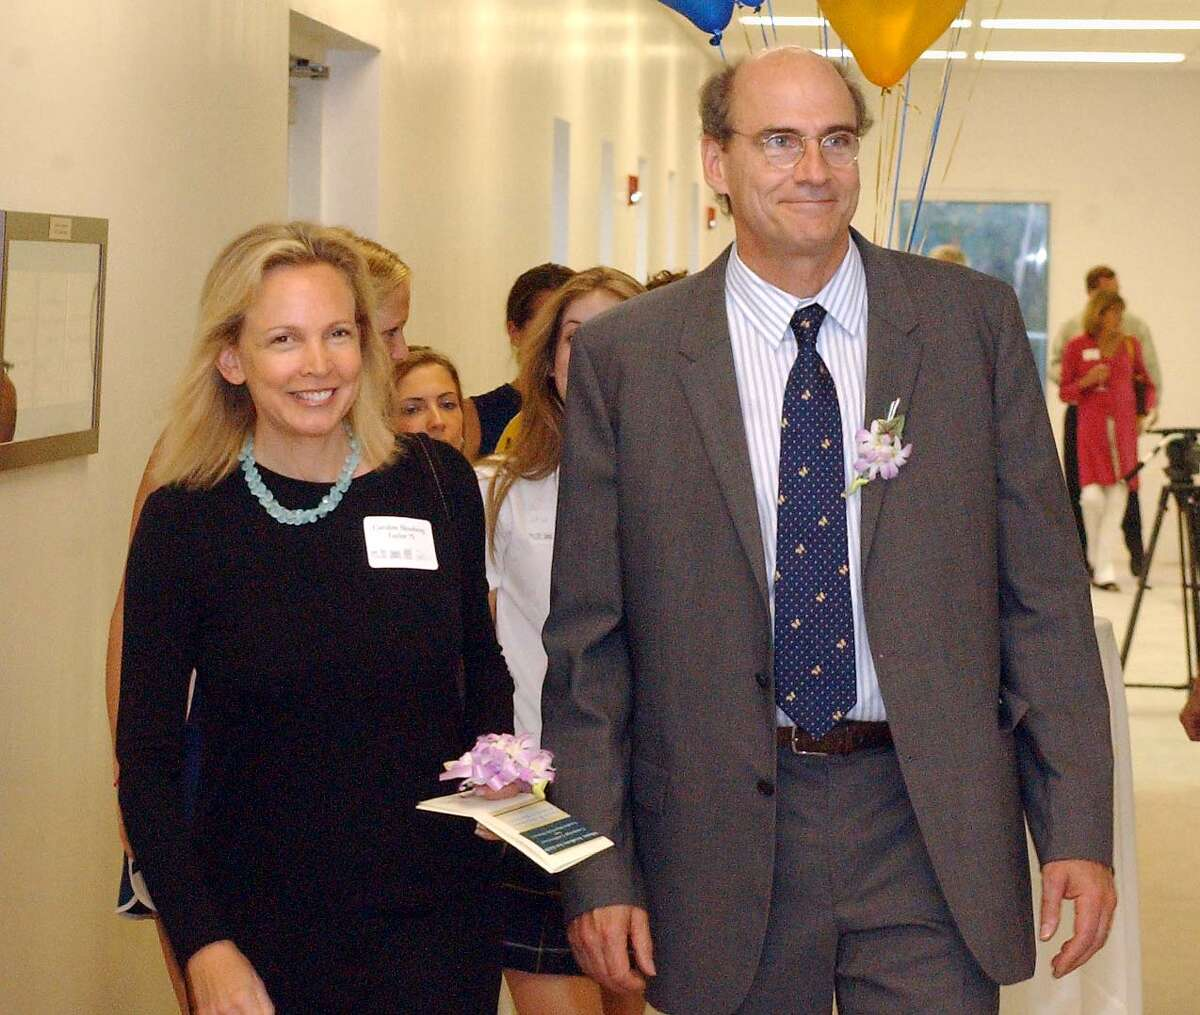 Kim Hessberg Taylor, an Albany Academy for Girls graduate, and her husband, singer/songwriter James Taylor, walk the halls of the new $3 million dollar athletic facility unveiled at the Albany Academy for Girls May 13, 2004. (Times Union Photo by James Goolsby)